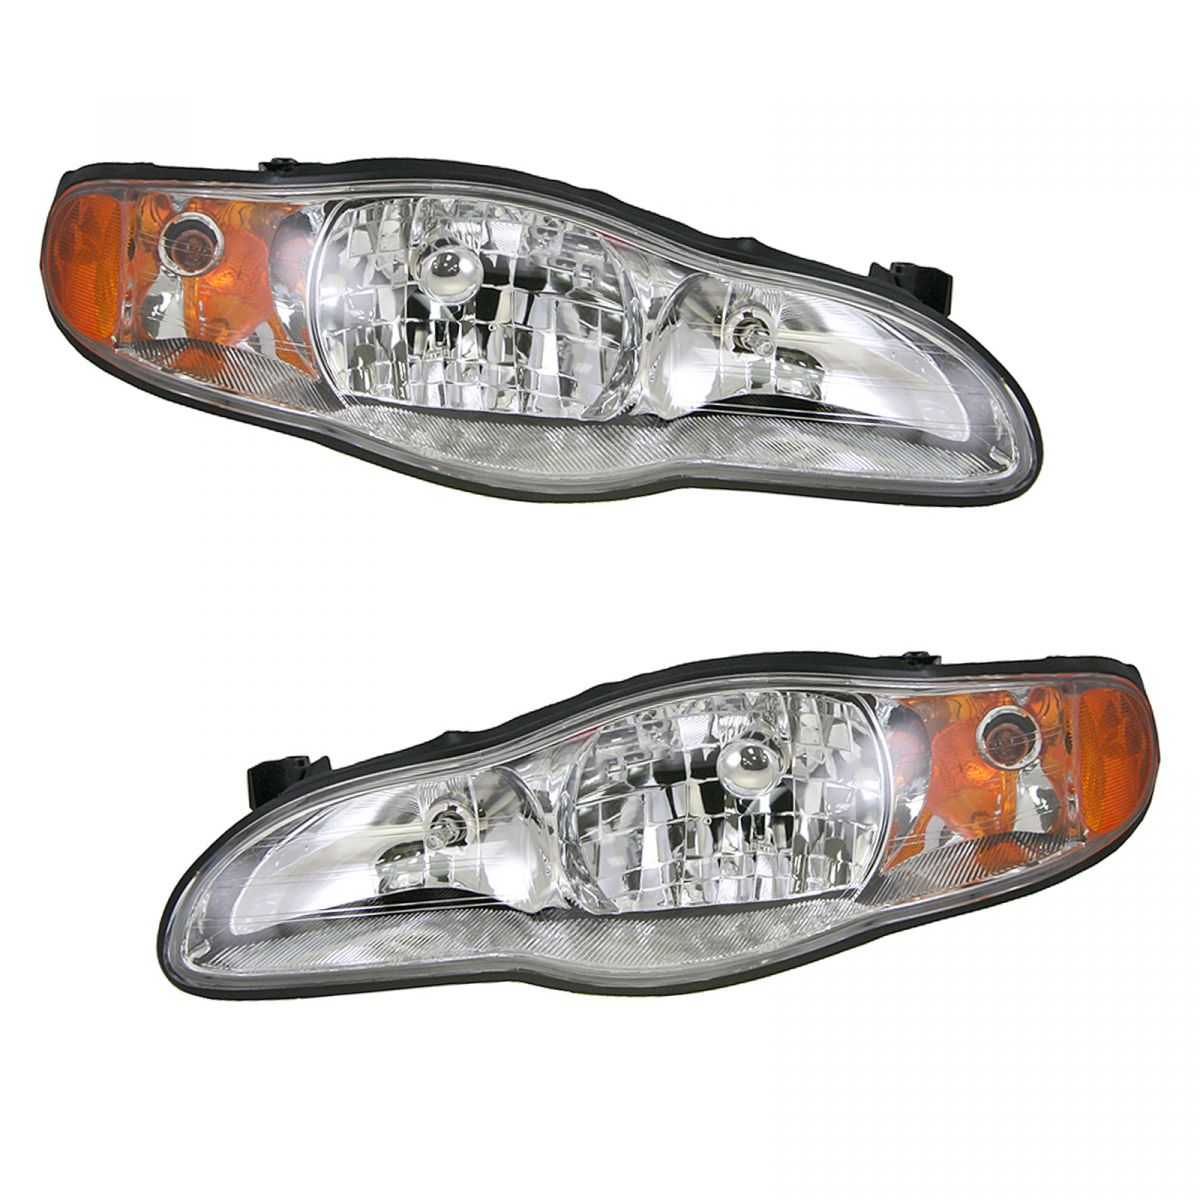 Headlights Headlamps Left & Right Pair Set NEW for 00-05 Chevy Monte Carlo